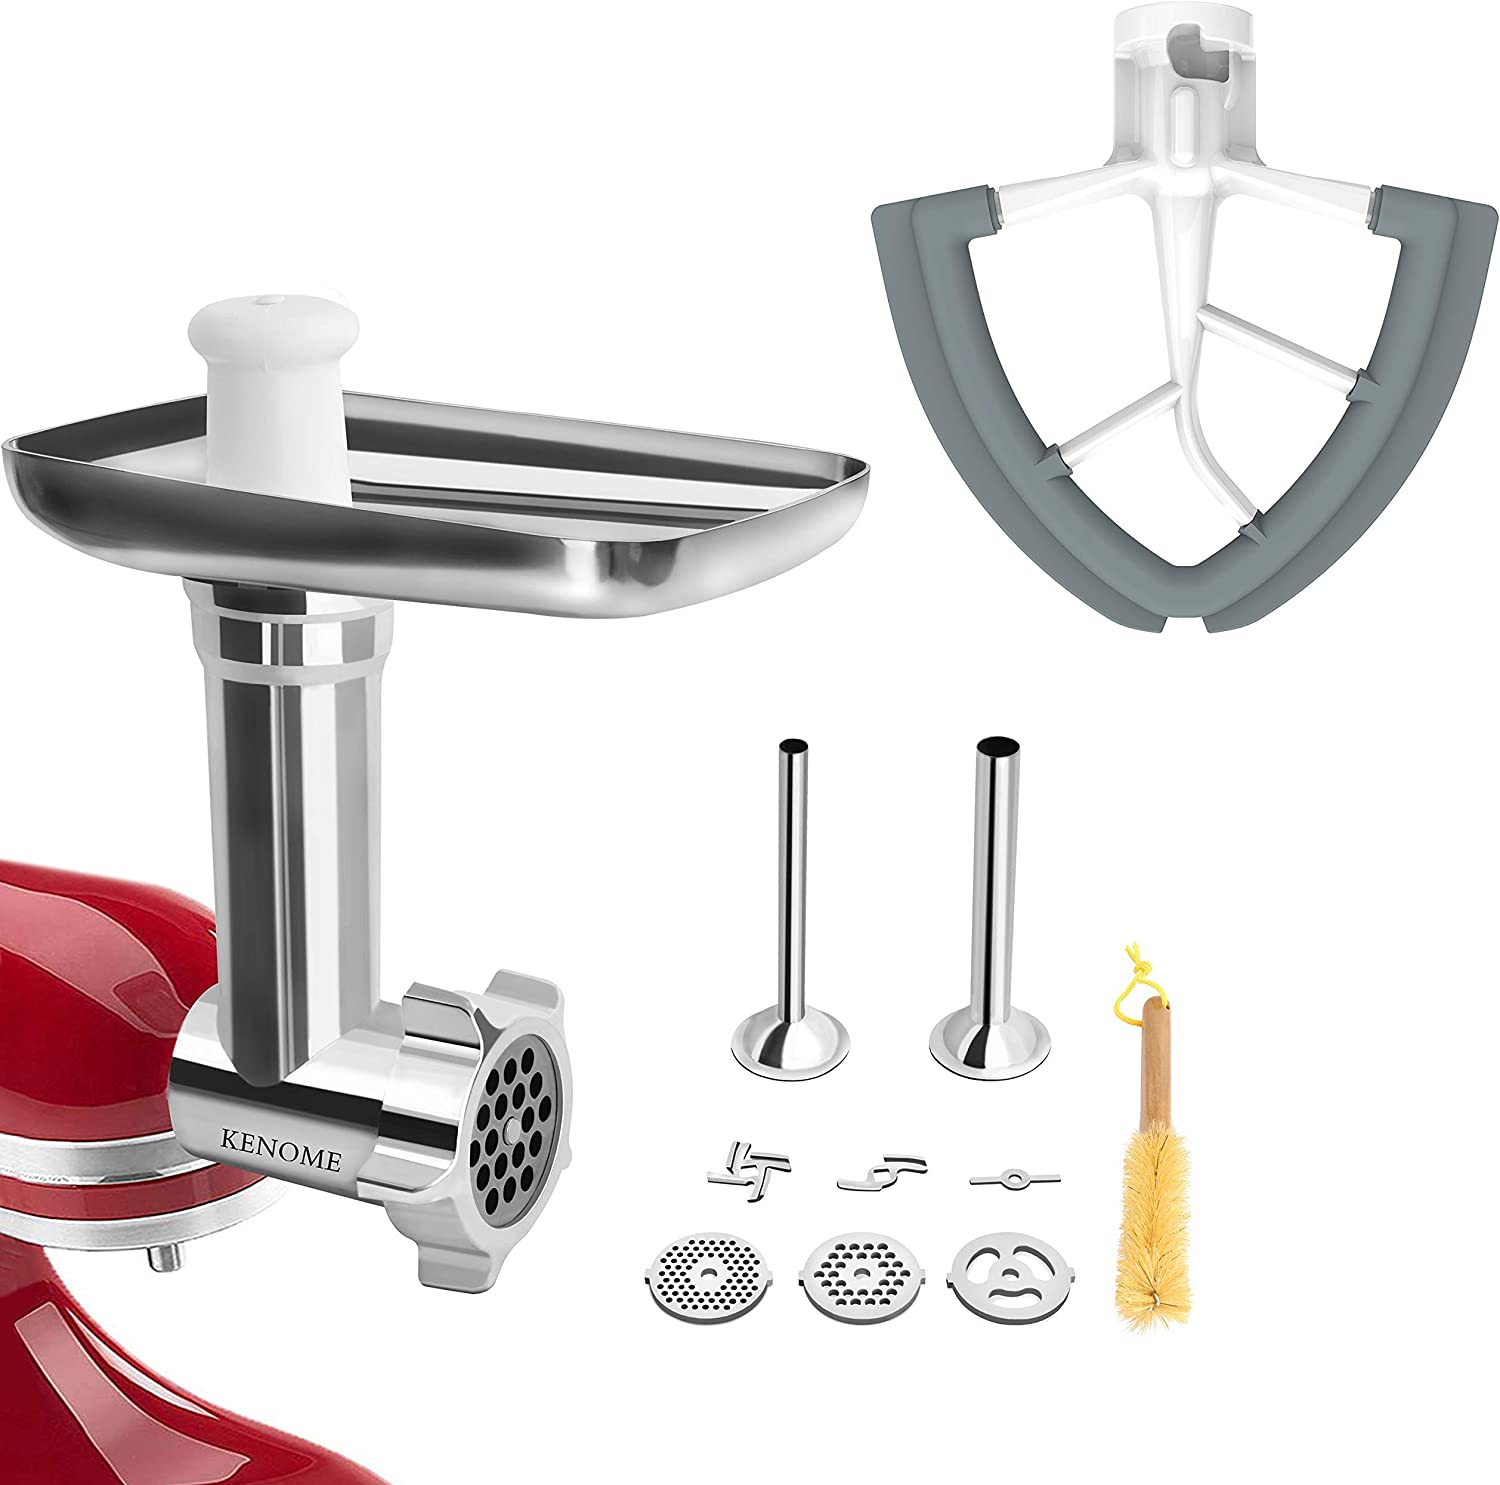 Metal Food Grinder Attachment for KitchenAid Stand Mixers and 4.5/5 Quart Flex Edge Beater for KitchenAid Tilt-Head Stand Mixers.